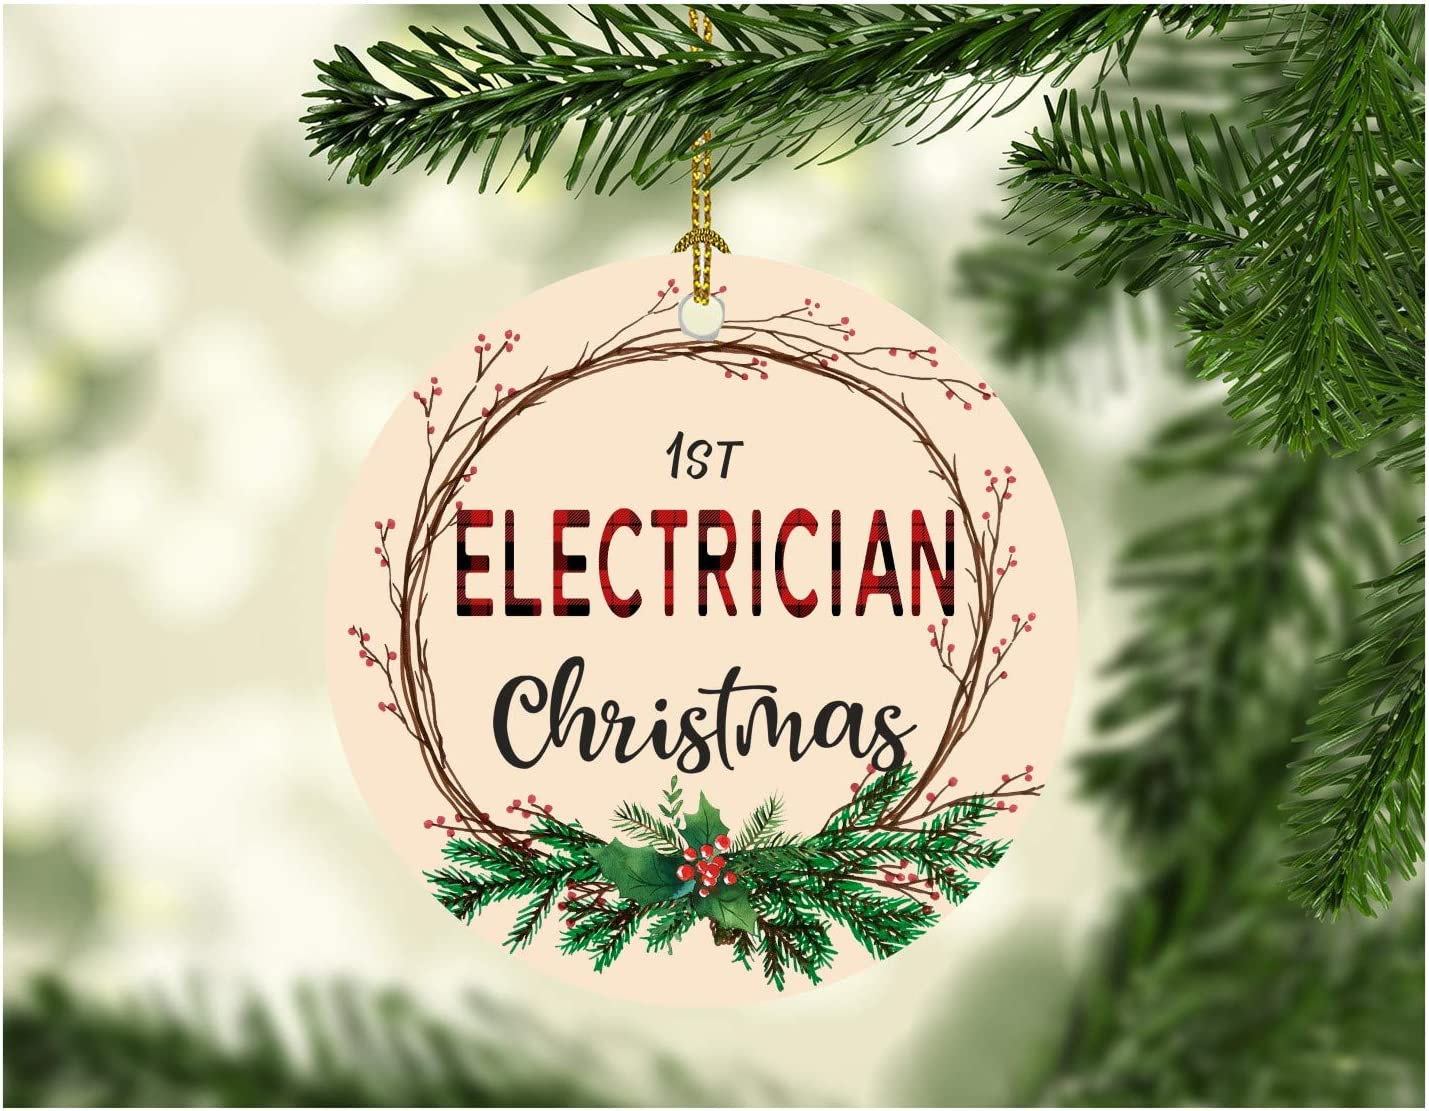 """Christmas Tree Ornament 2020 First Christmas Electrician Decorations Tree Congrats On New Job Good Luck Present Ideas Family Decor for A Holiday Party Funny Xmas MDF Plastic 3"""" White"""